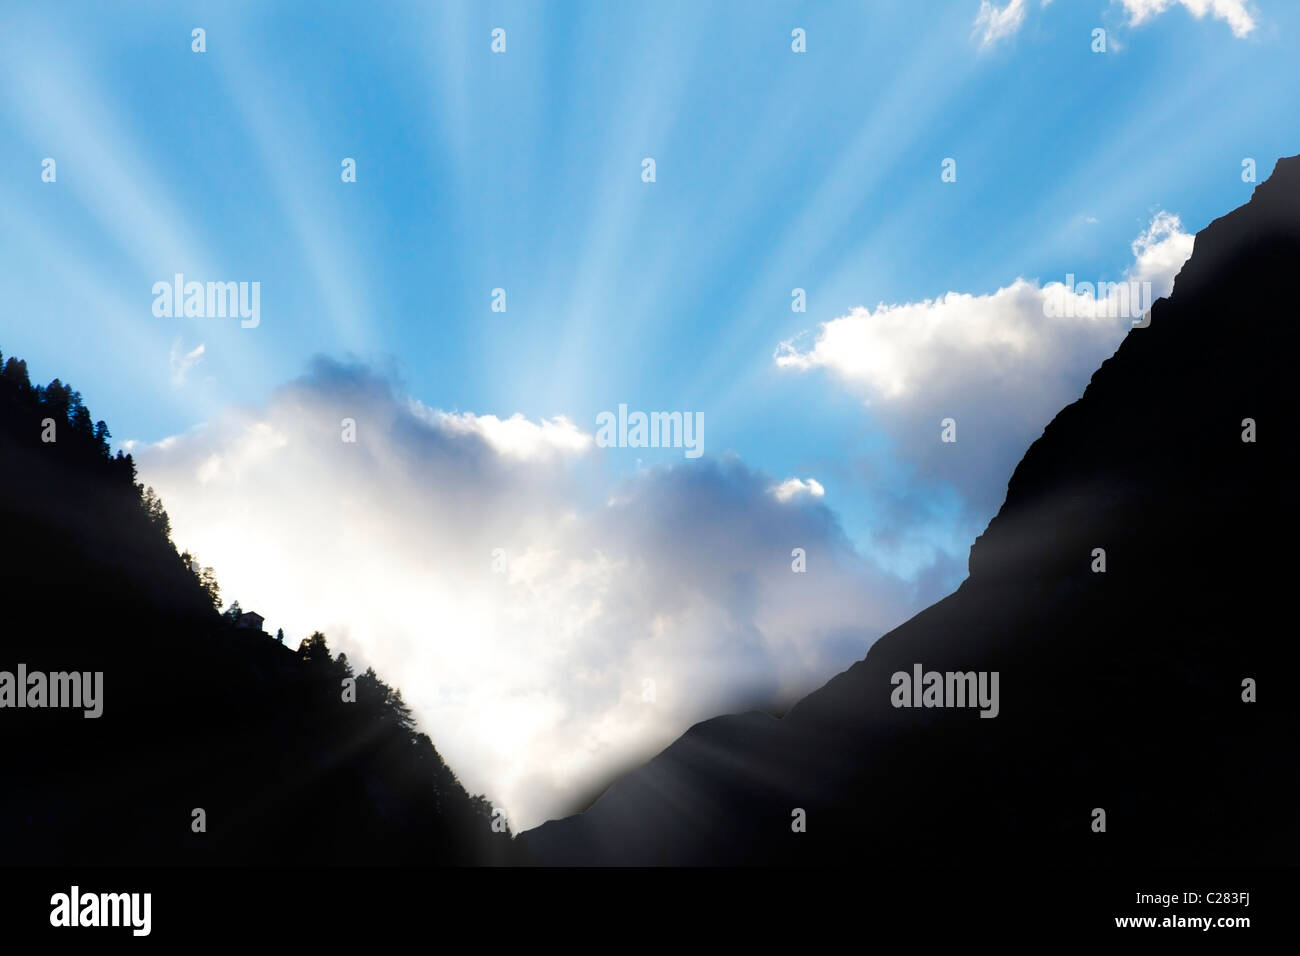 sun bursts through clouds from a dark mountain valley symbol for hope,call not to give up,light at the end of the - Stock Image